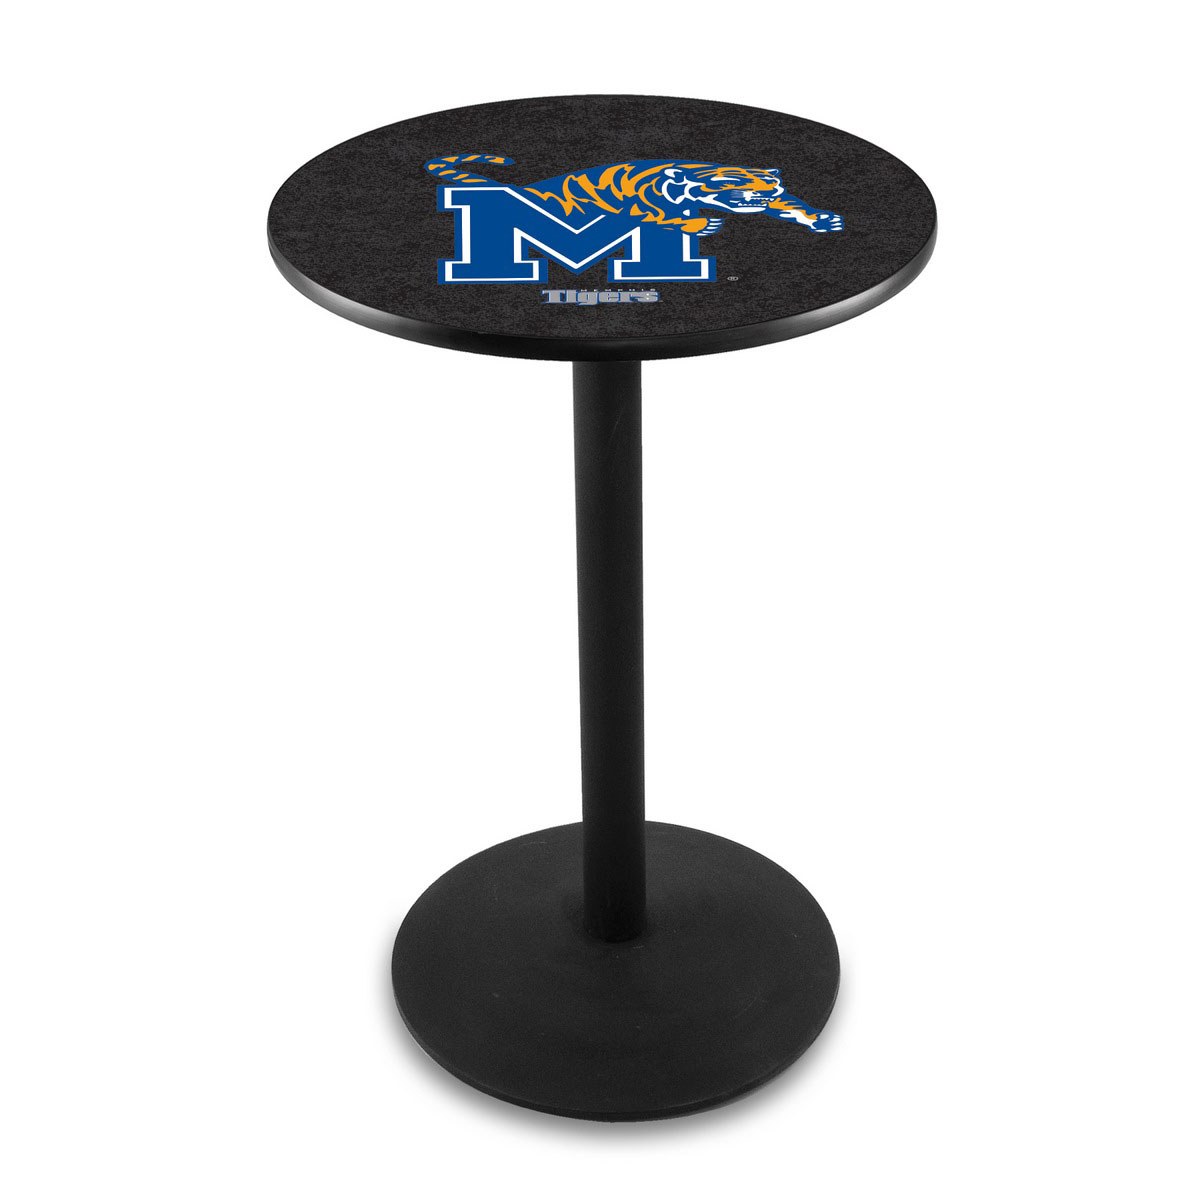 Trustworthy University Memphis Logo Pub Bar Table Round Stand Product Photo